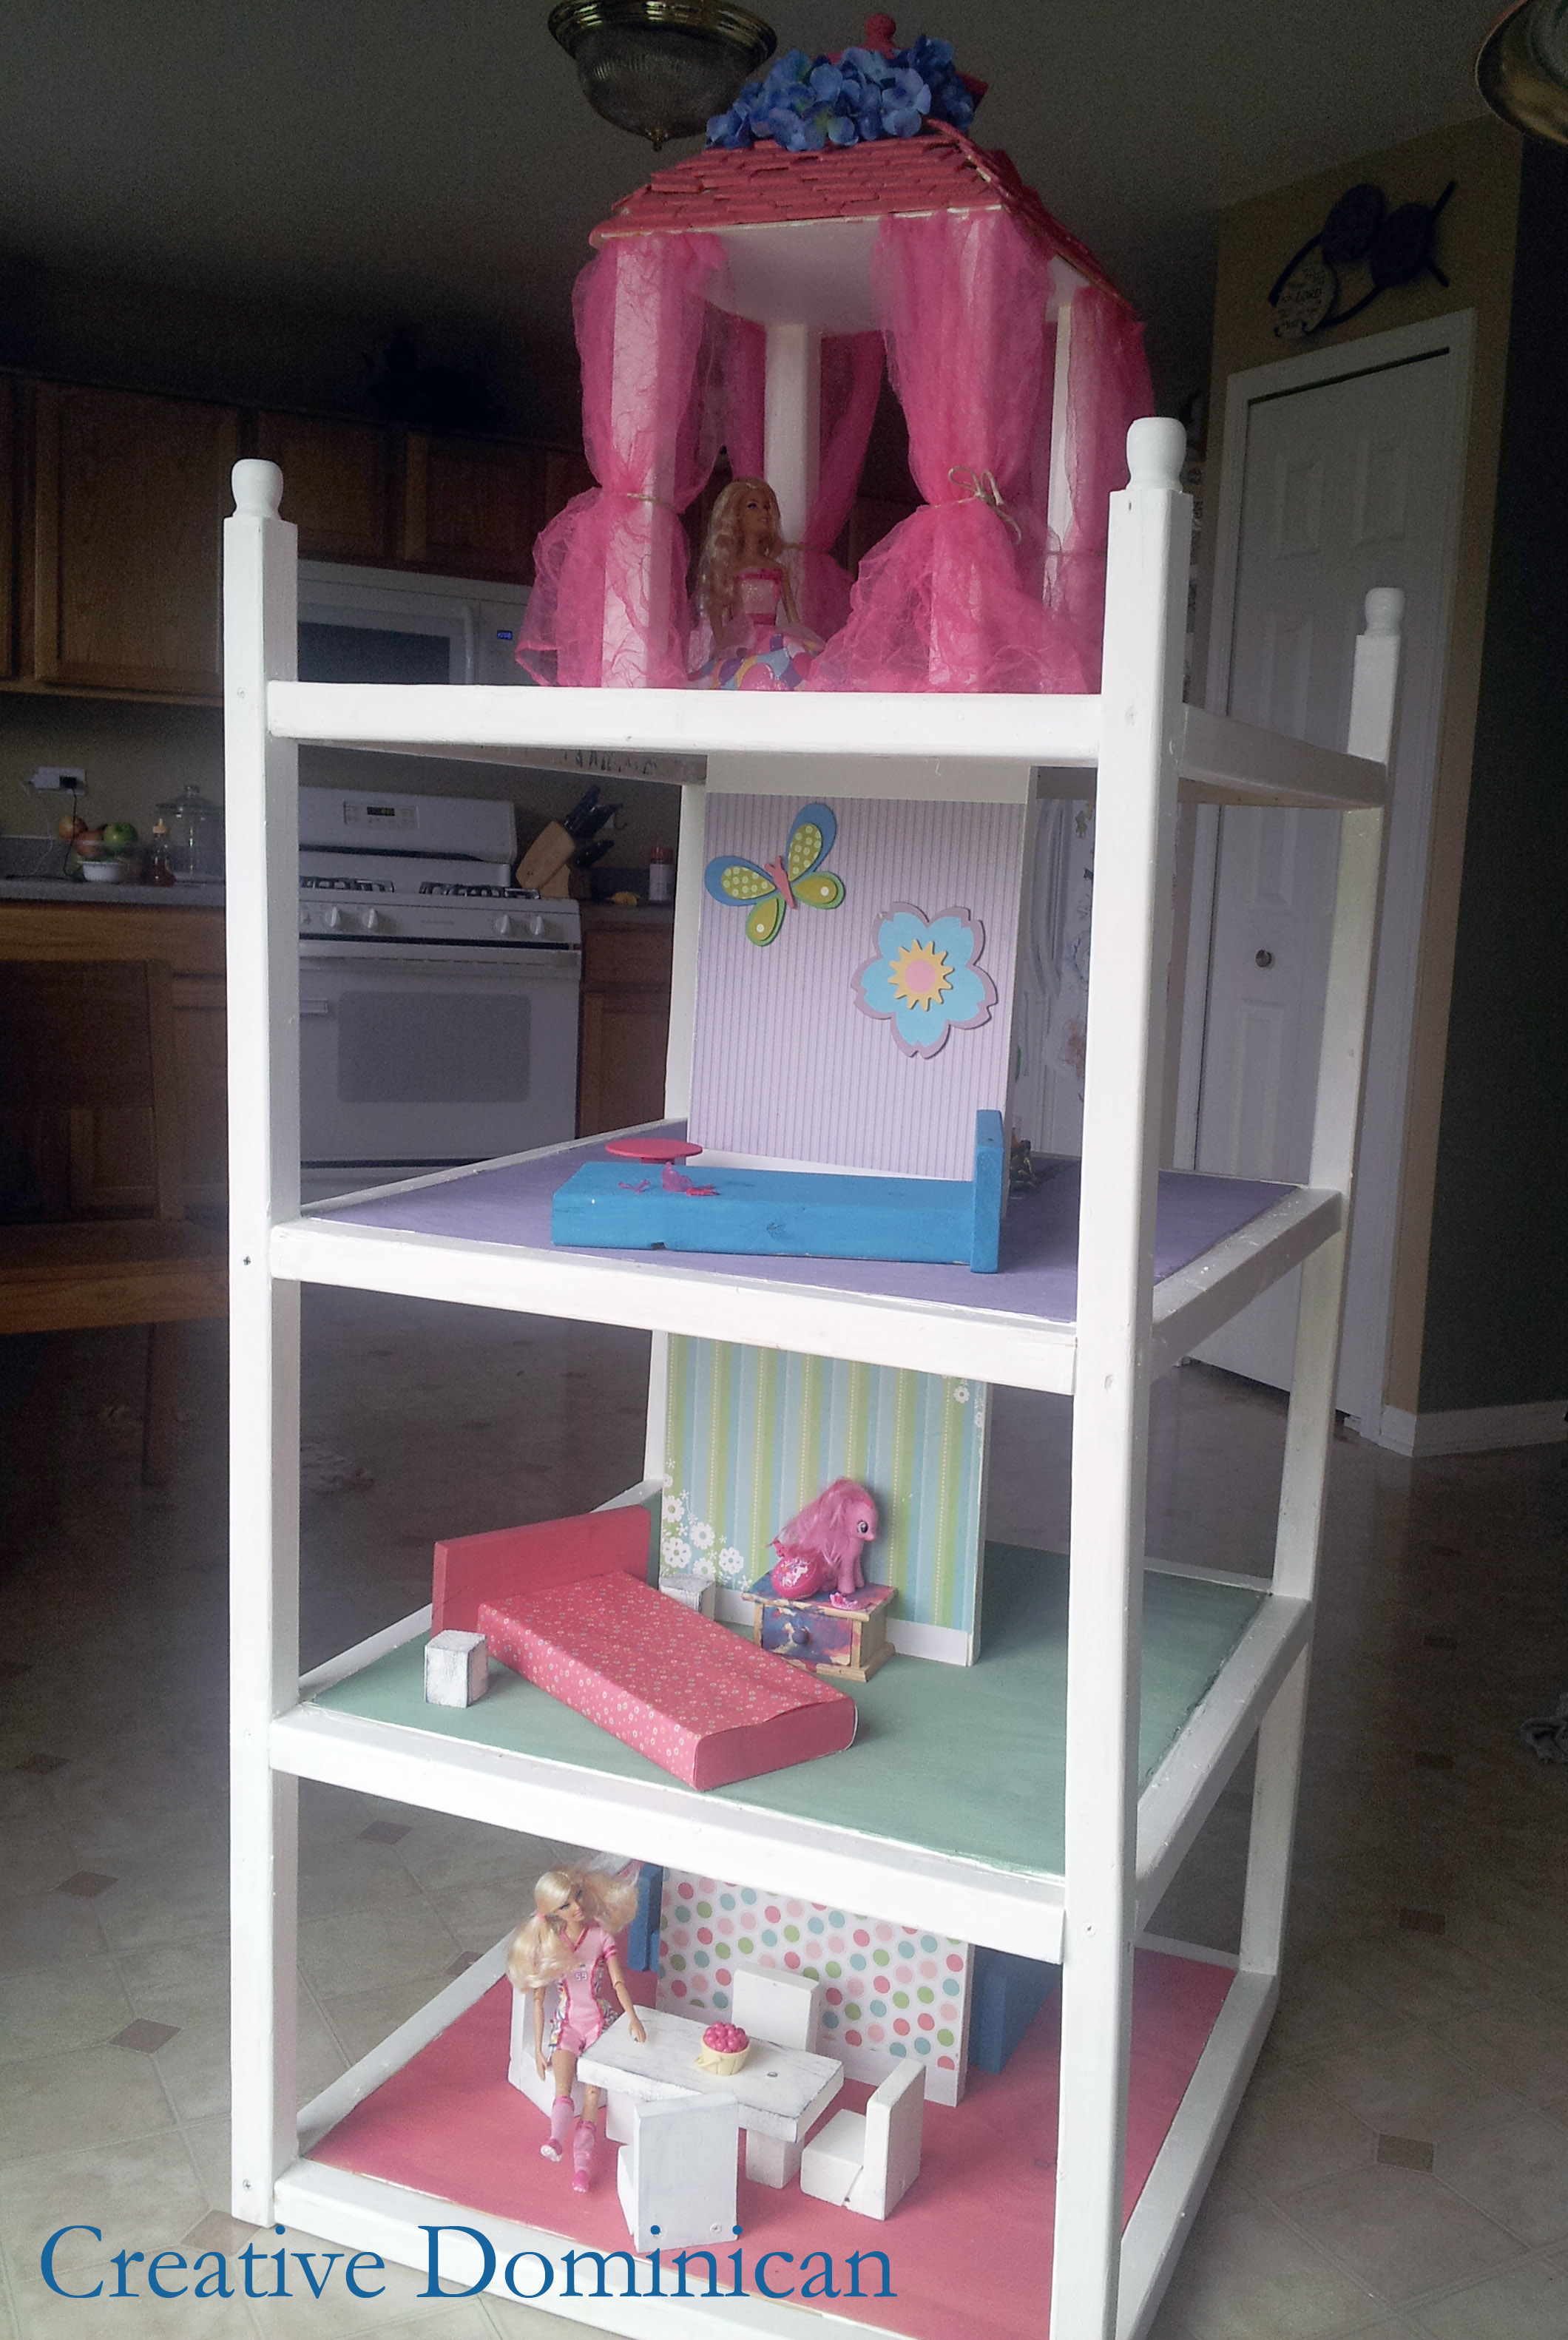 Plans For Making Dollhouse Furniture Plans Diy Free Download How To